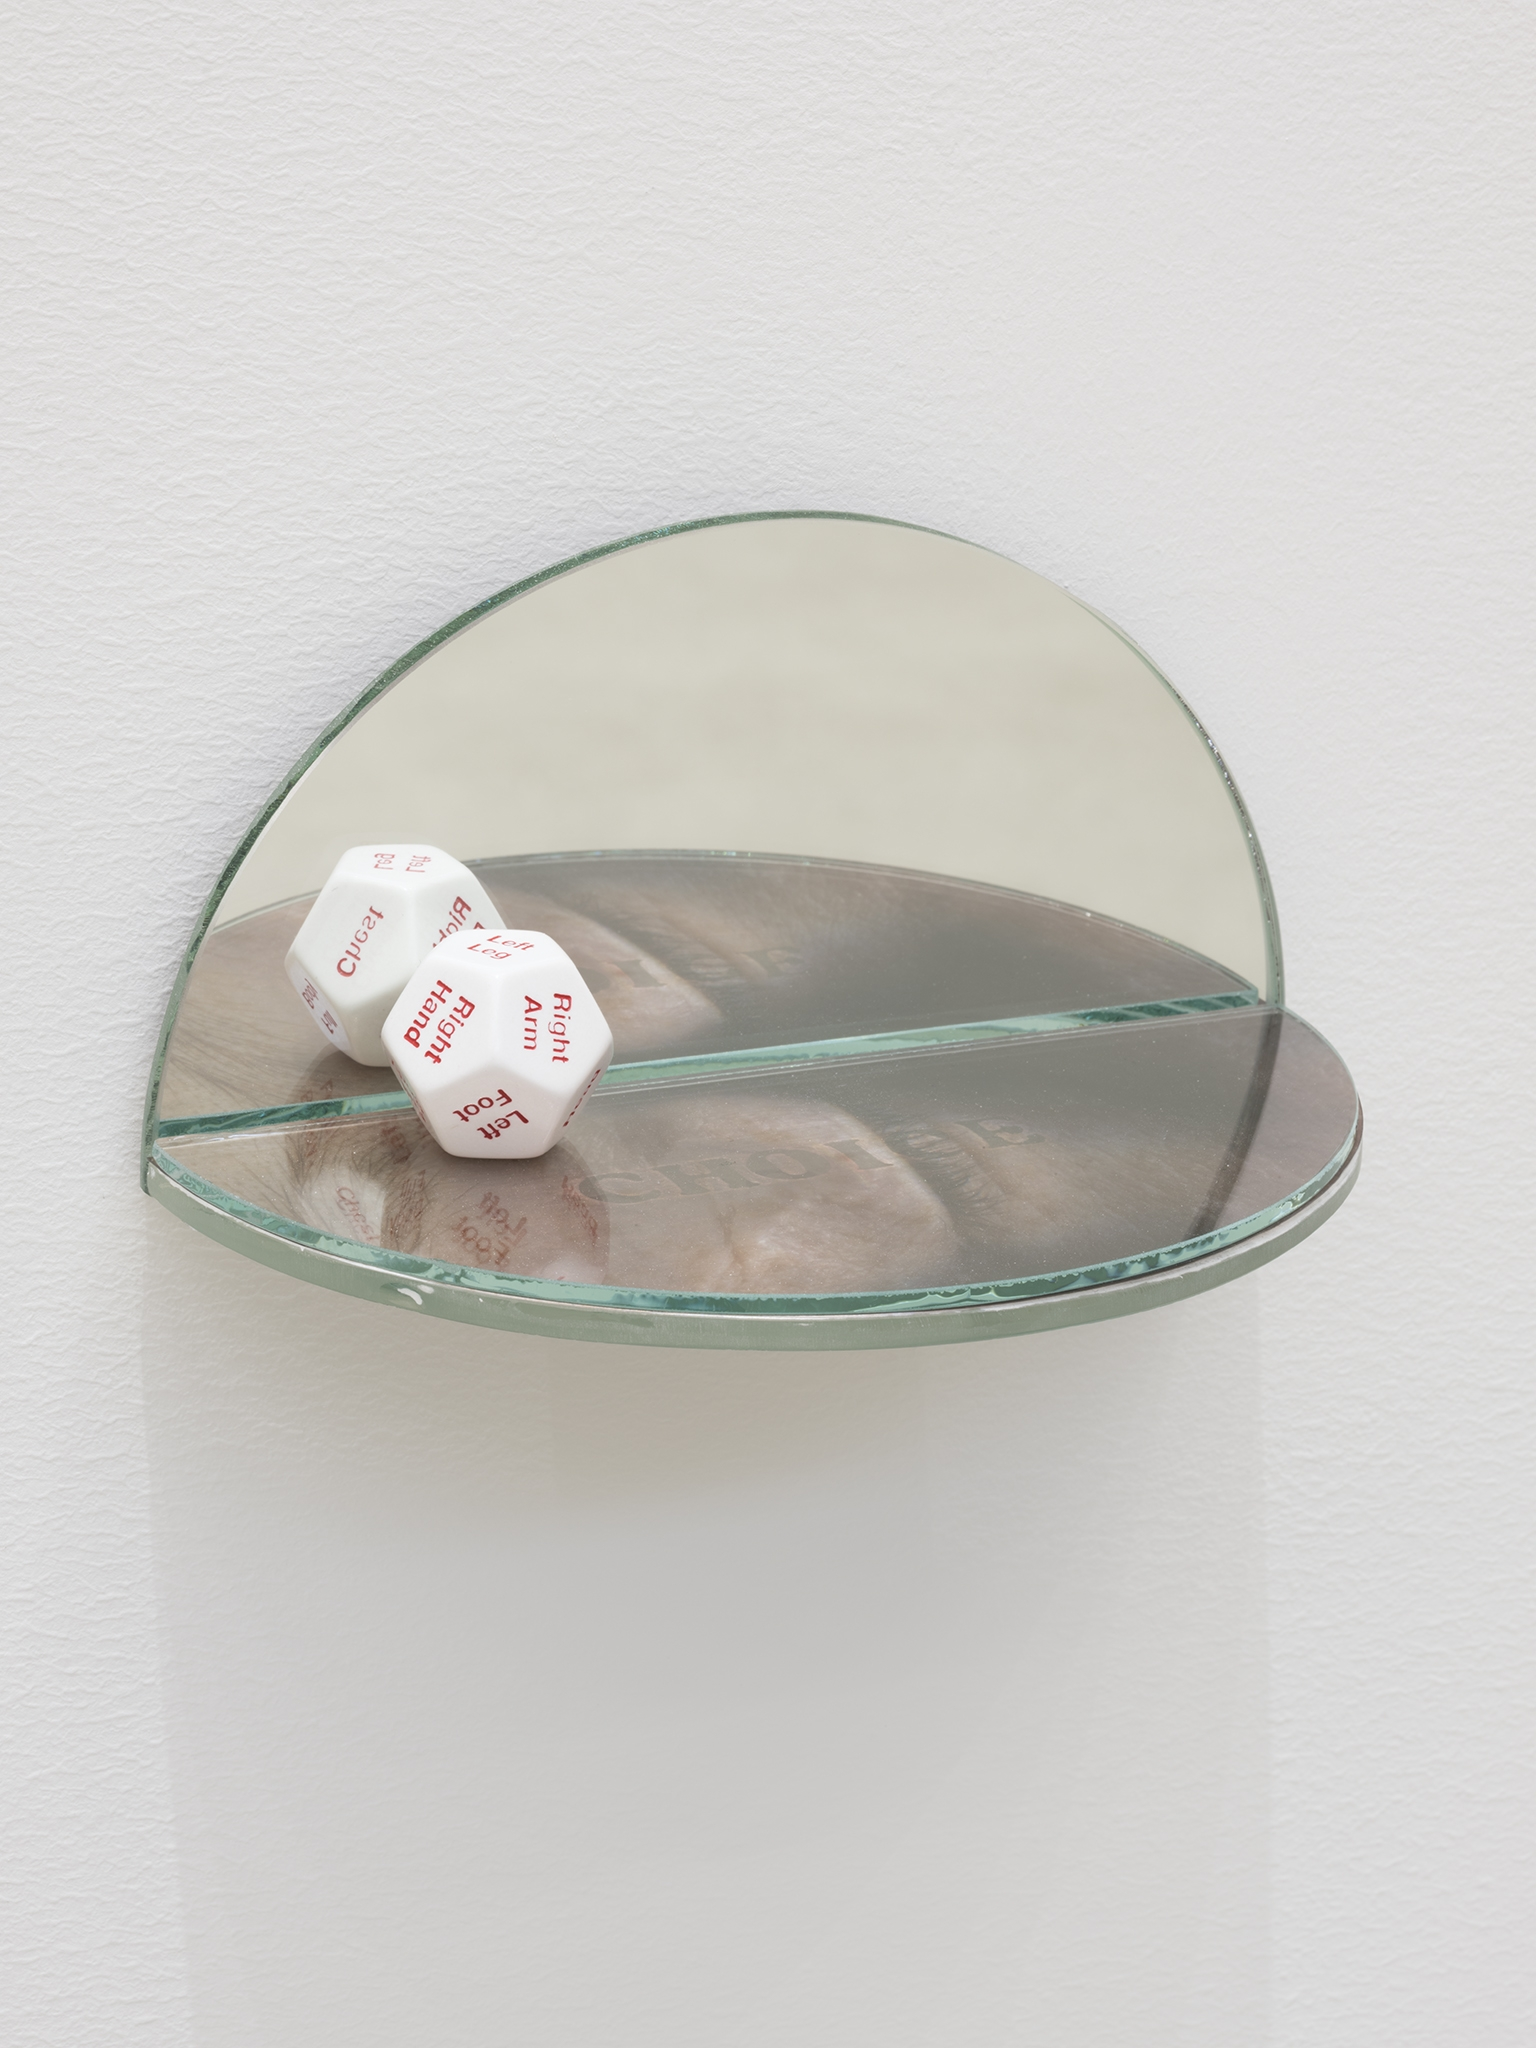 ​​​​​​Julia Feyrer, The Ambidextrous Universe: seeing, 2018, mirror, liquid mirror, glass, fujiclear transparency, 12-sided die, 4 x 4 x 7 in. (9 x 9 x 18 cm)​​​​​ by